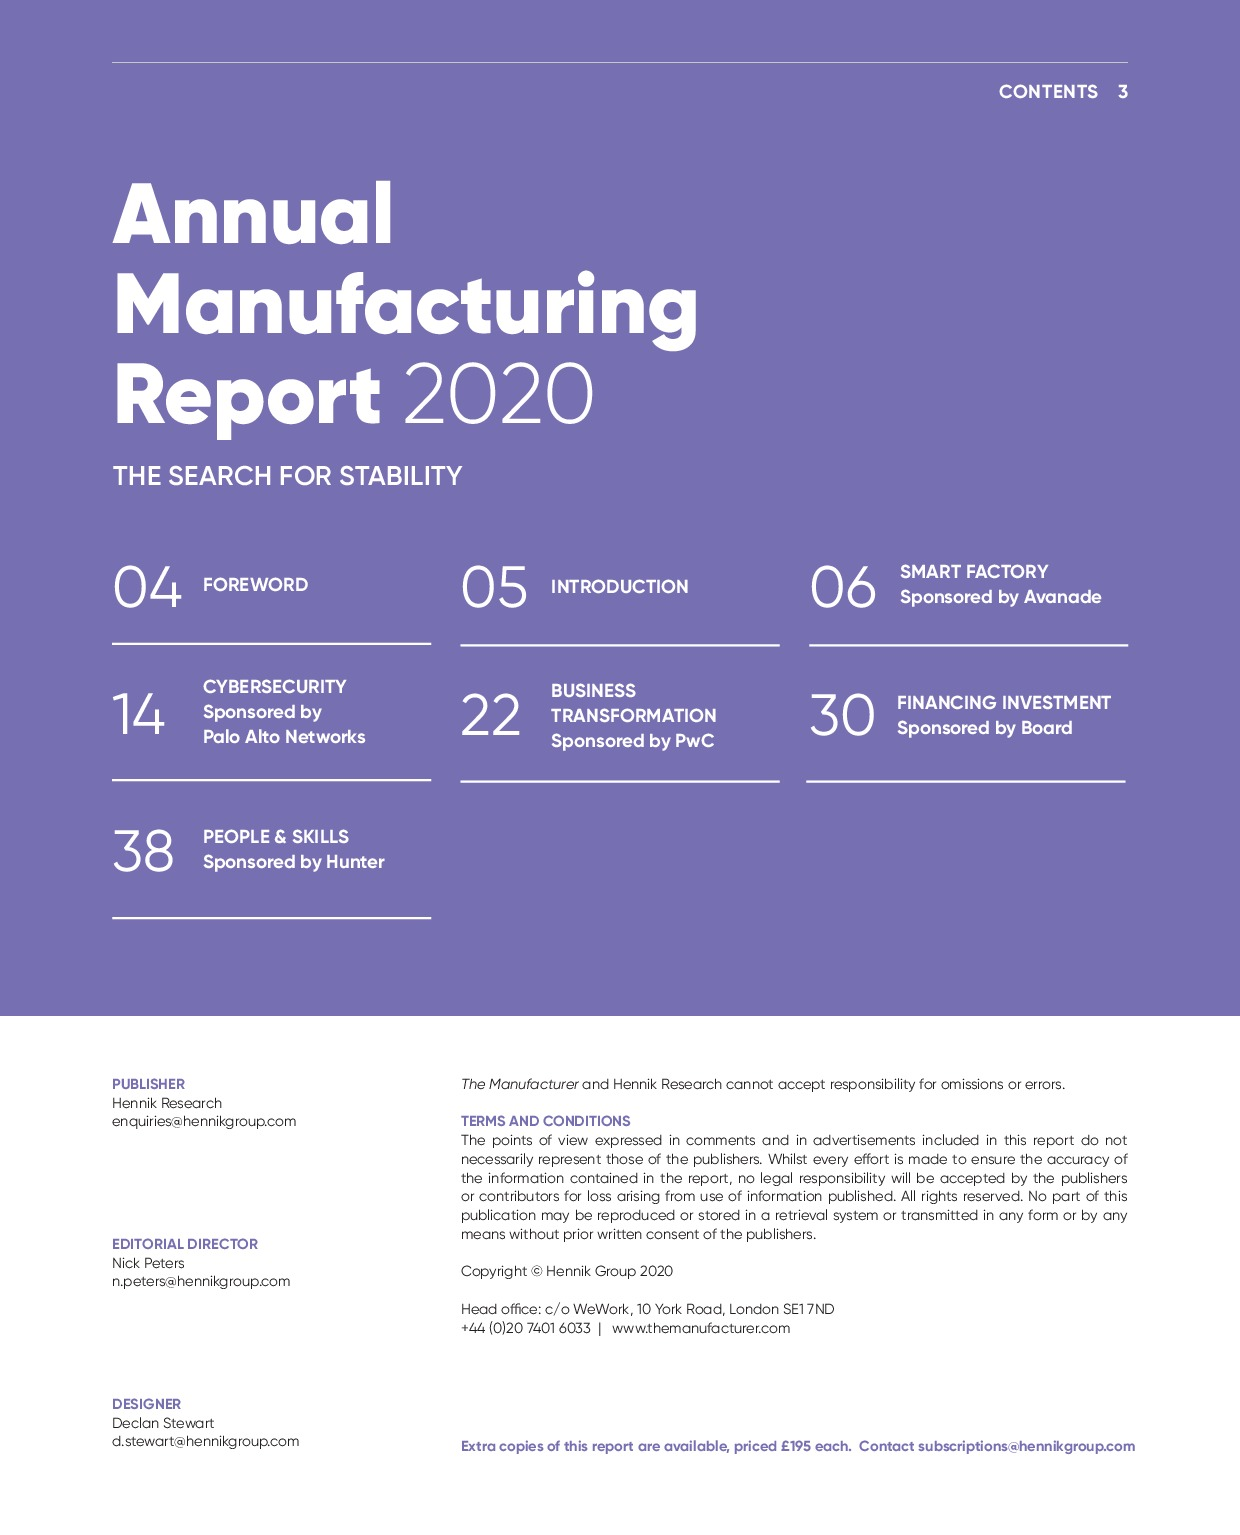 Annual Manufacturing Report 2020   Page 3